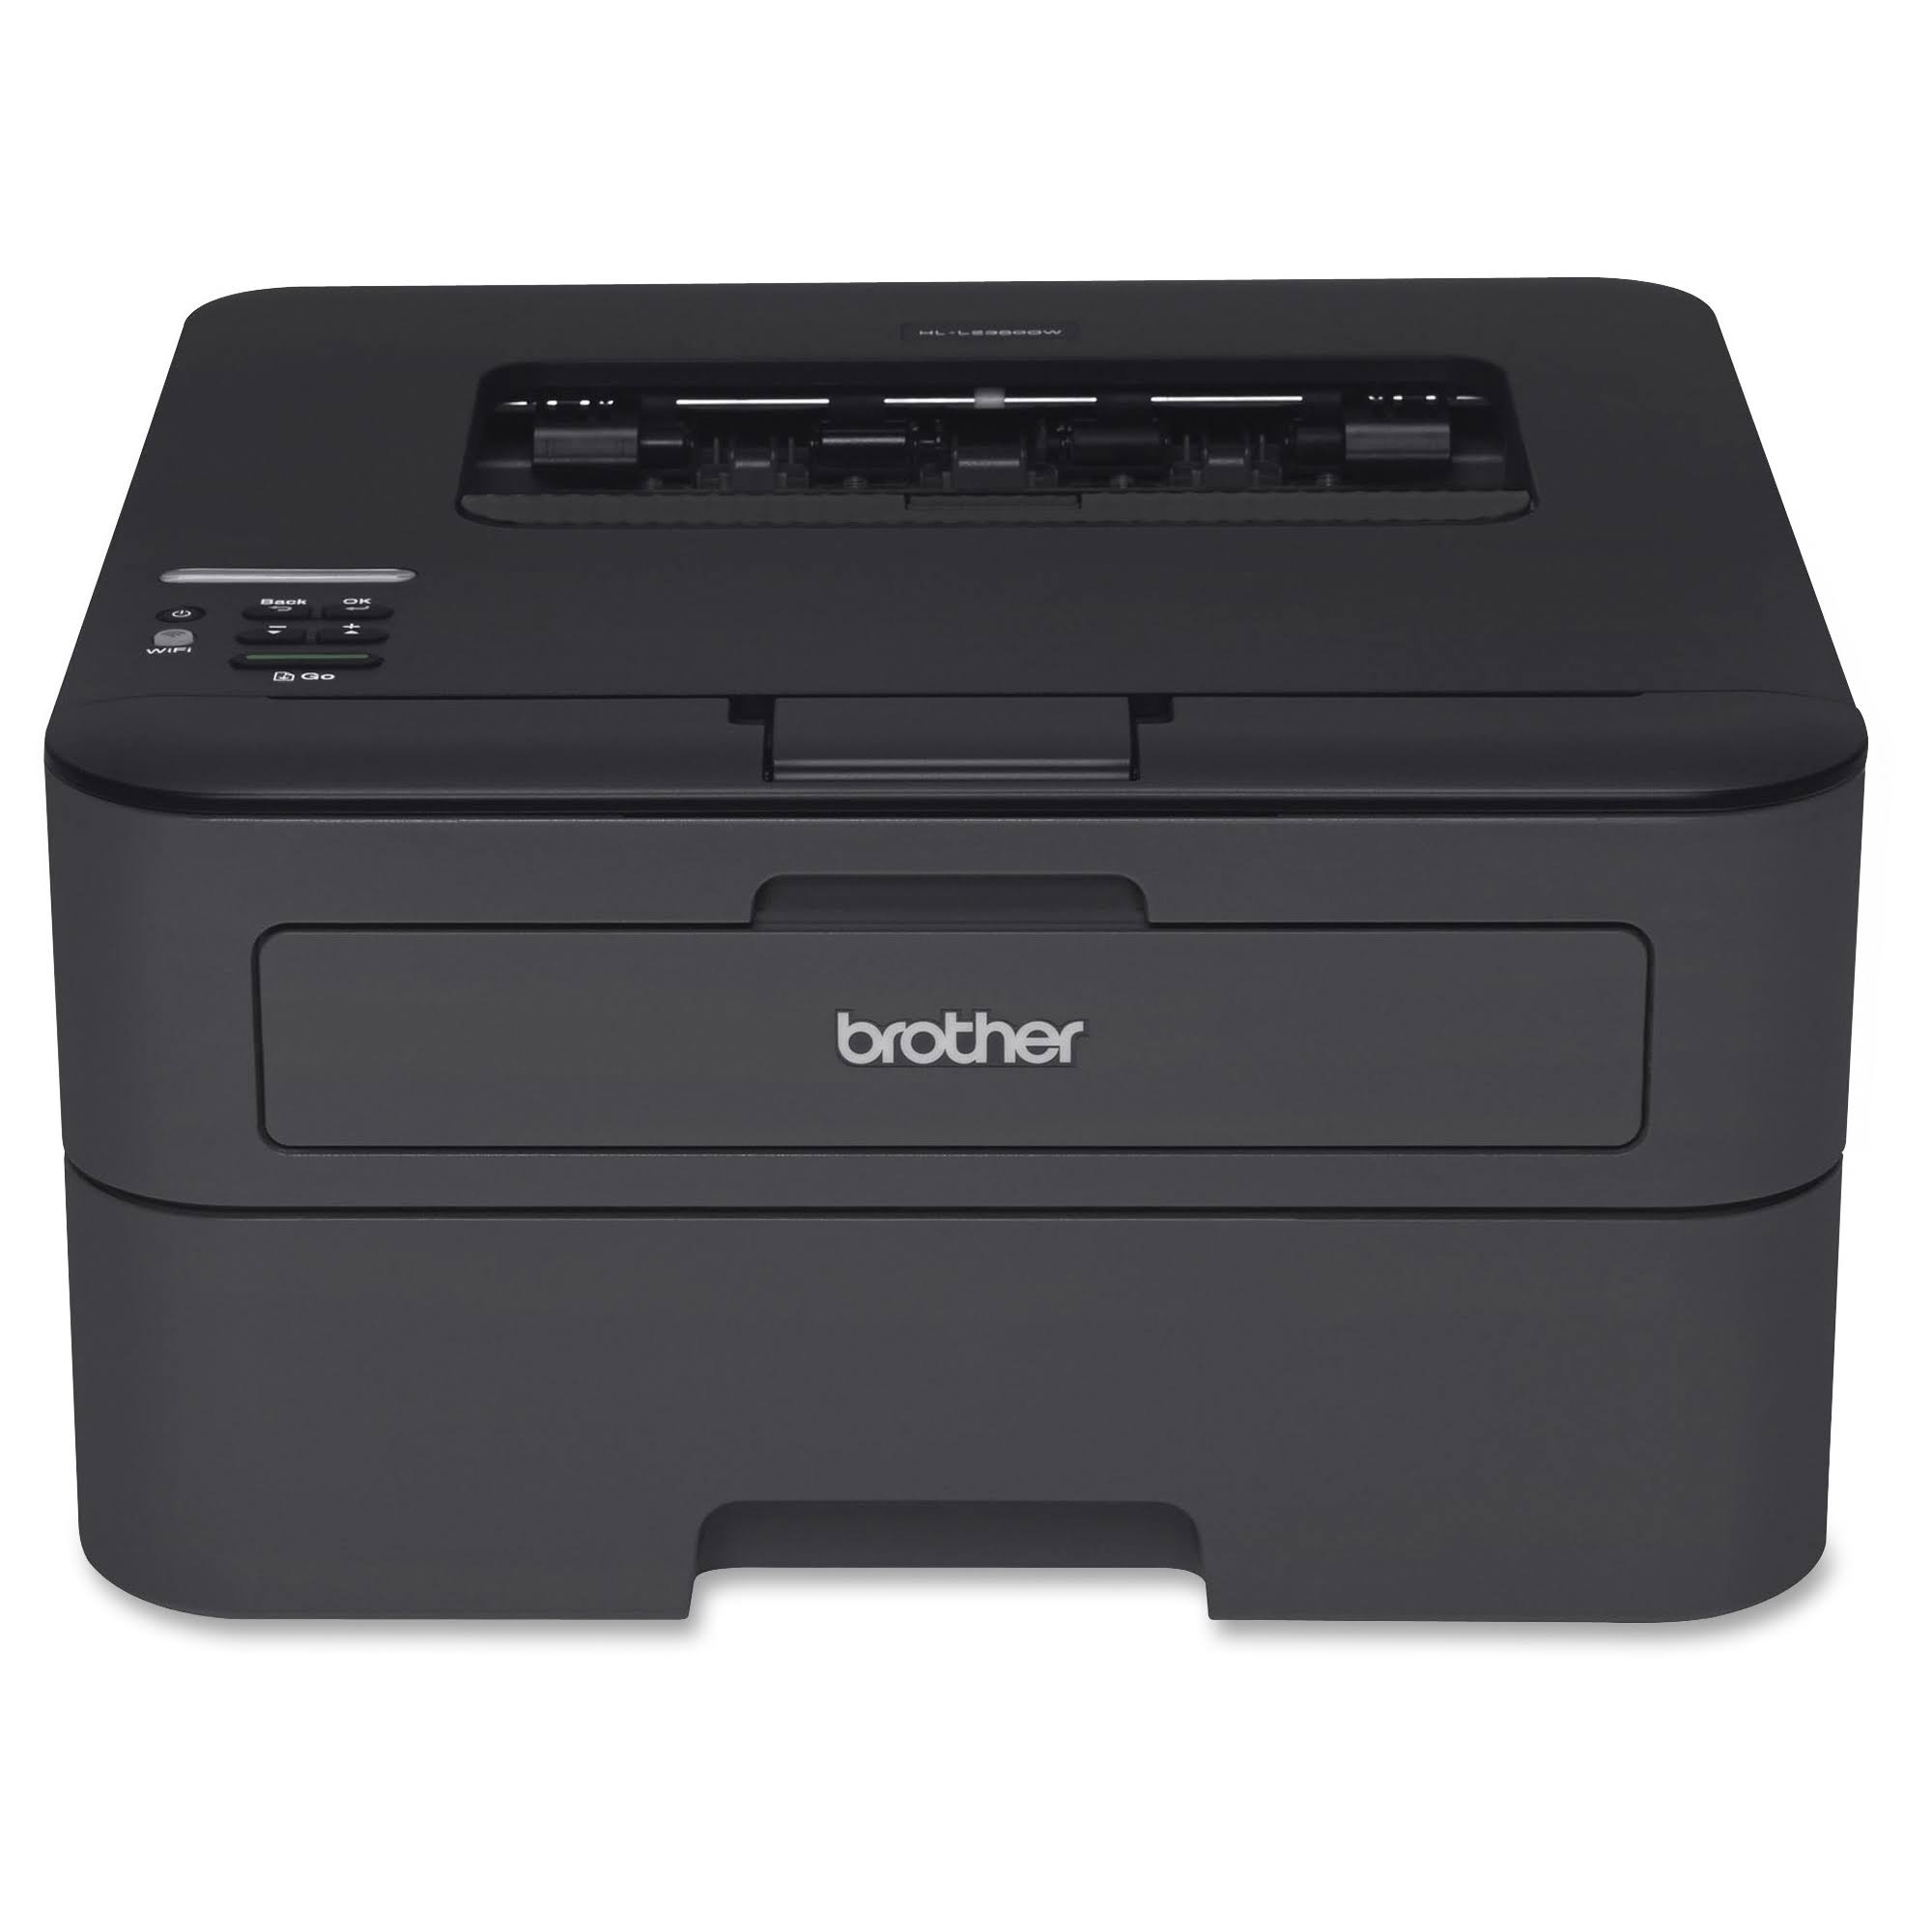 Brother HL-L2340DW Mono Laser Printer, Fully Refurbished (HL-L2340DW)